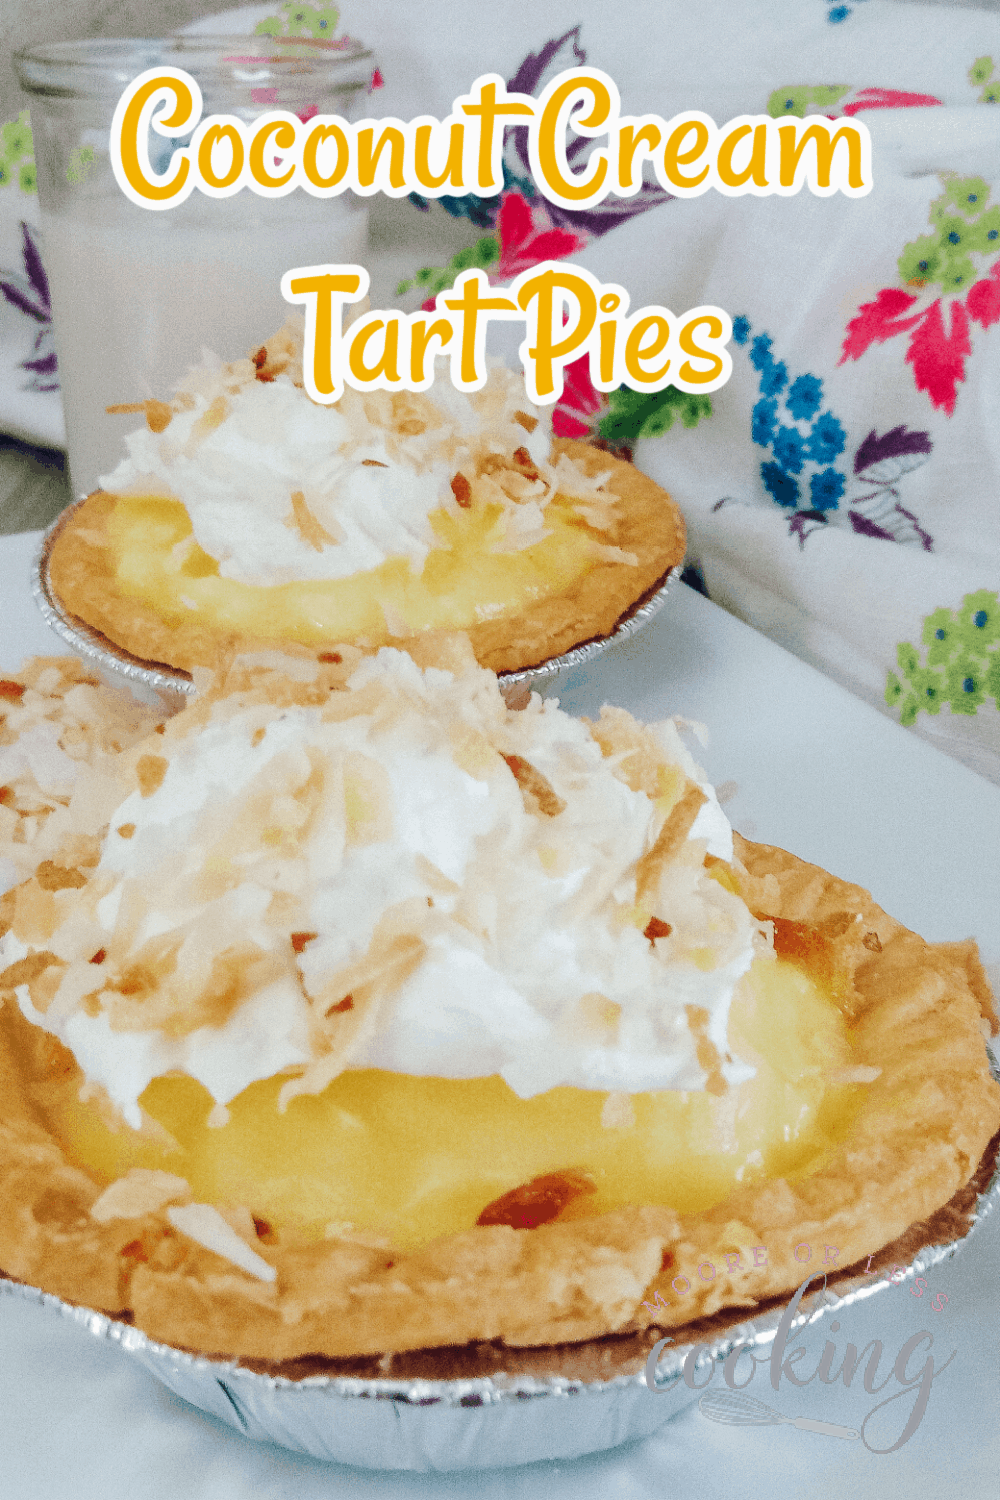 Coconut Cream Tart Pies